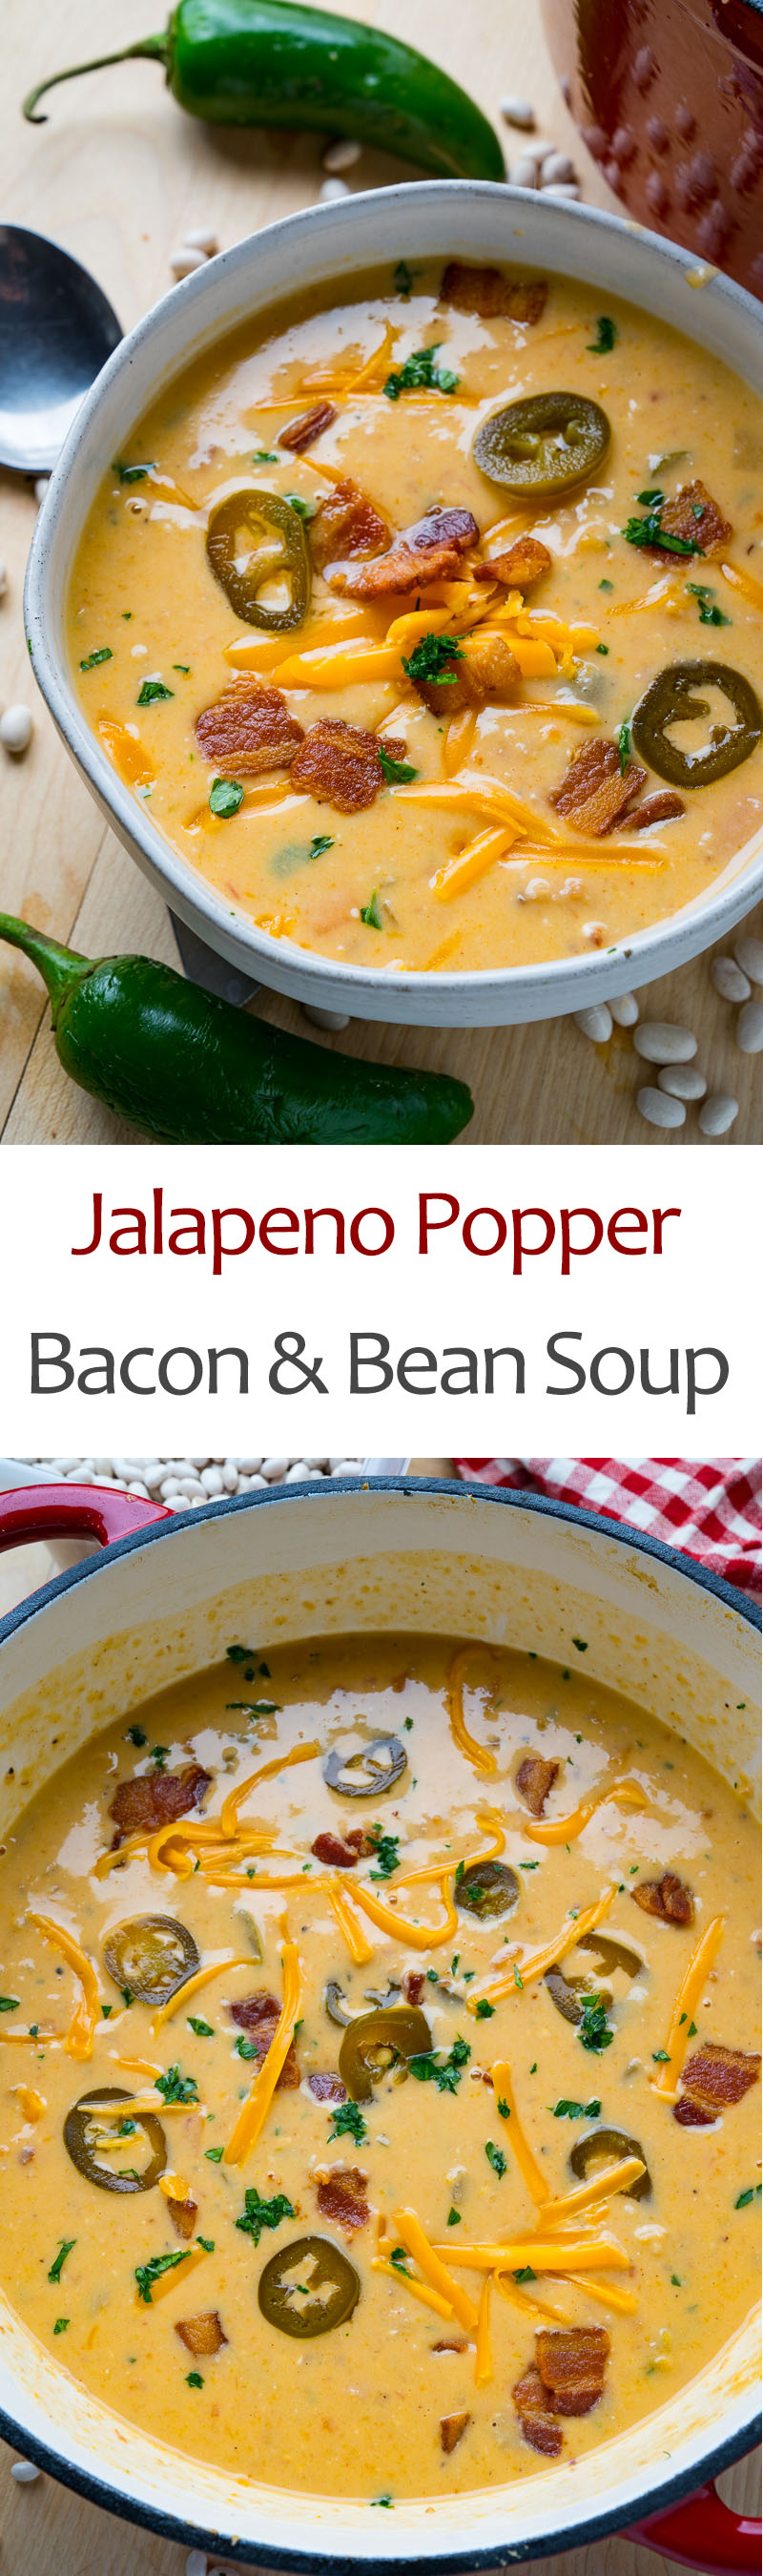 Jalapeno Popper Bacon and Bean Soup